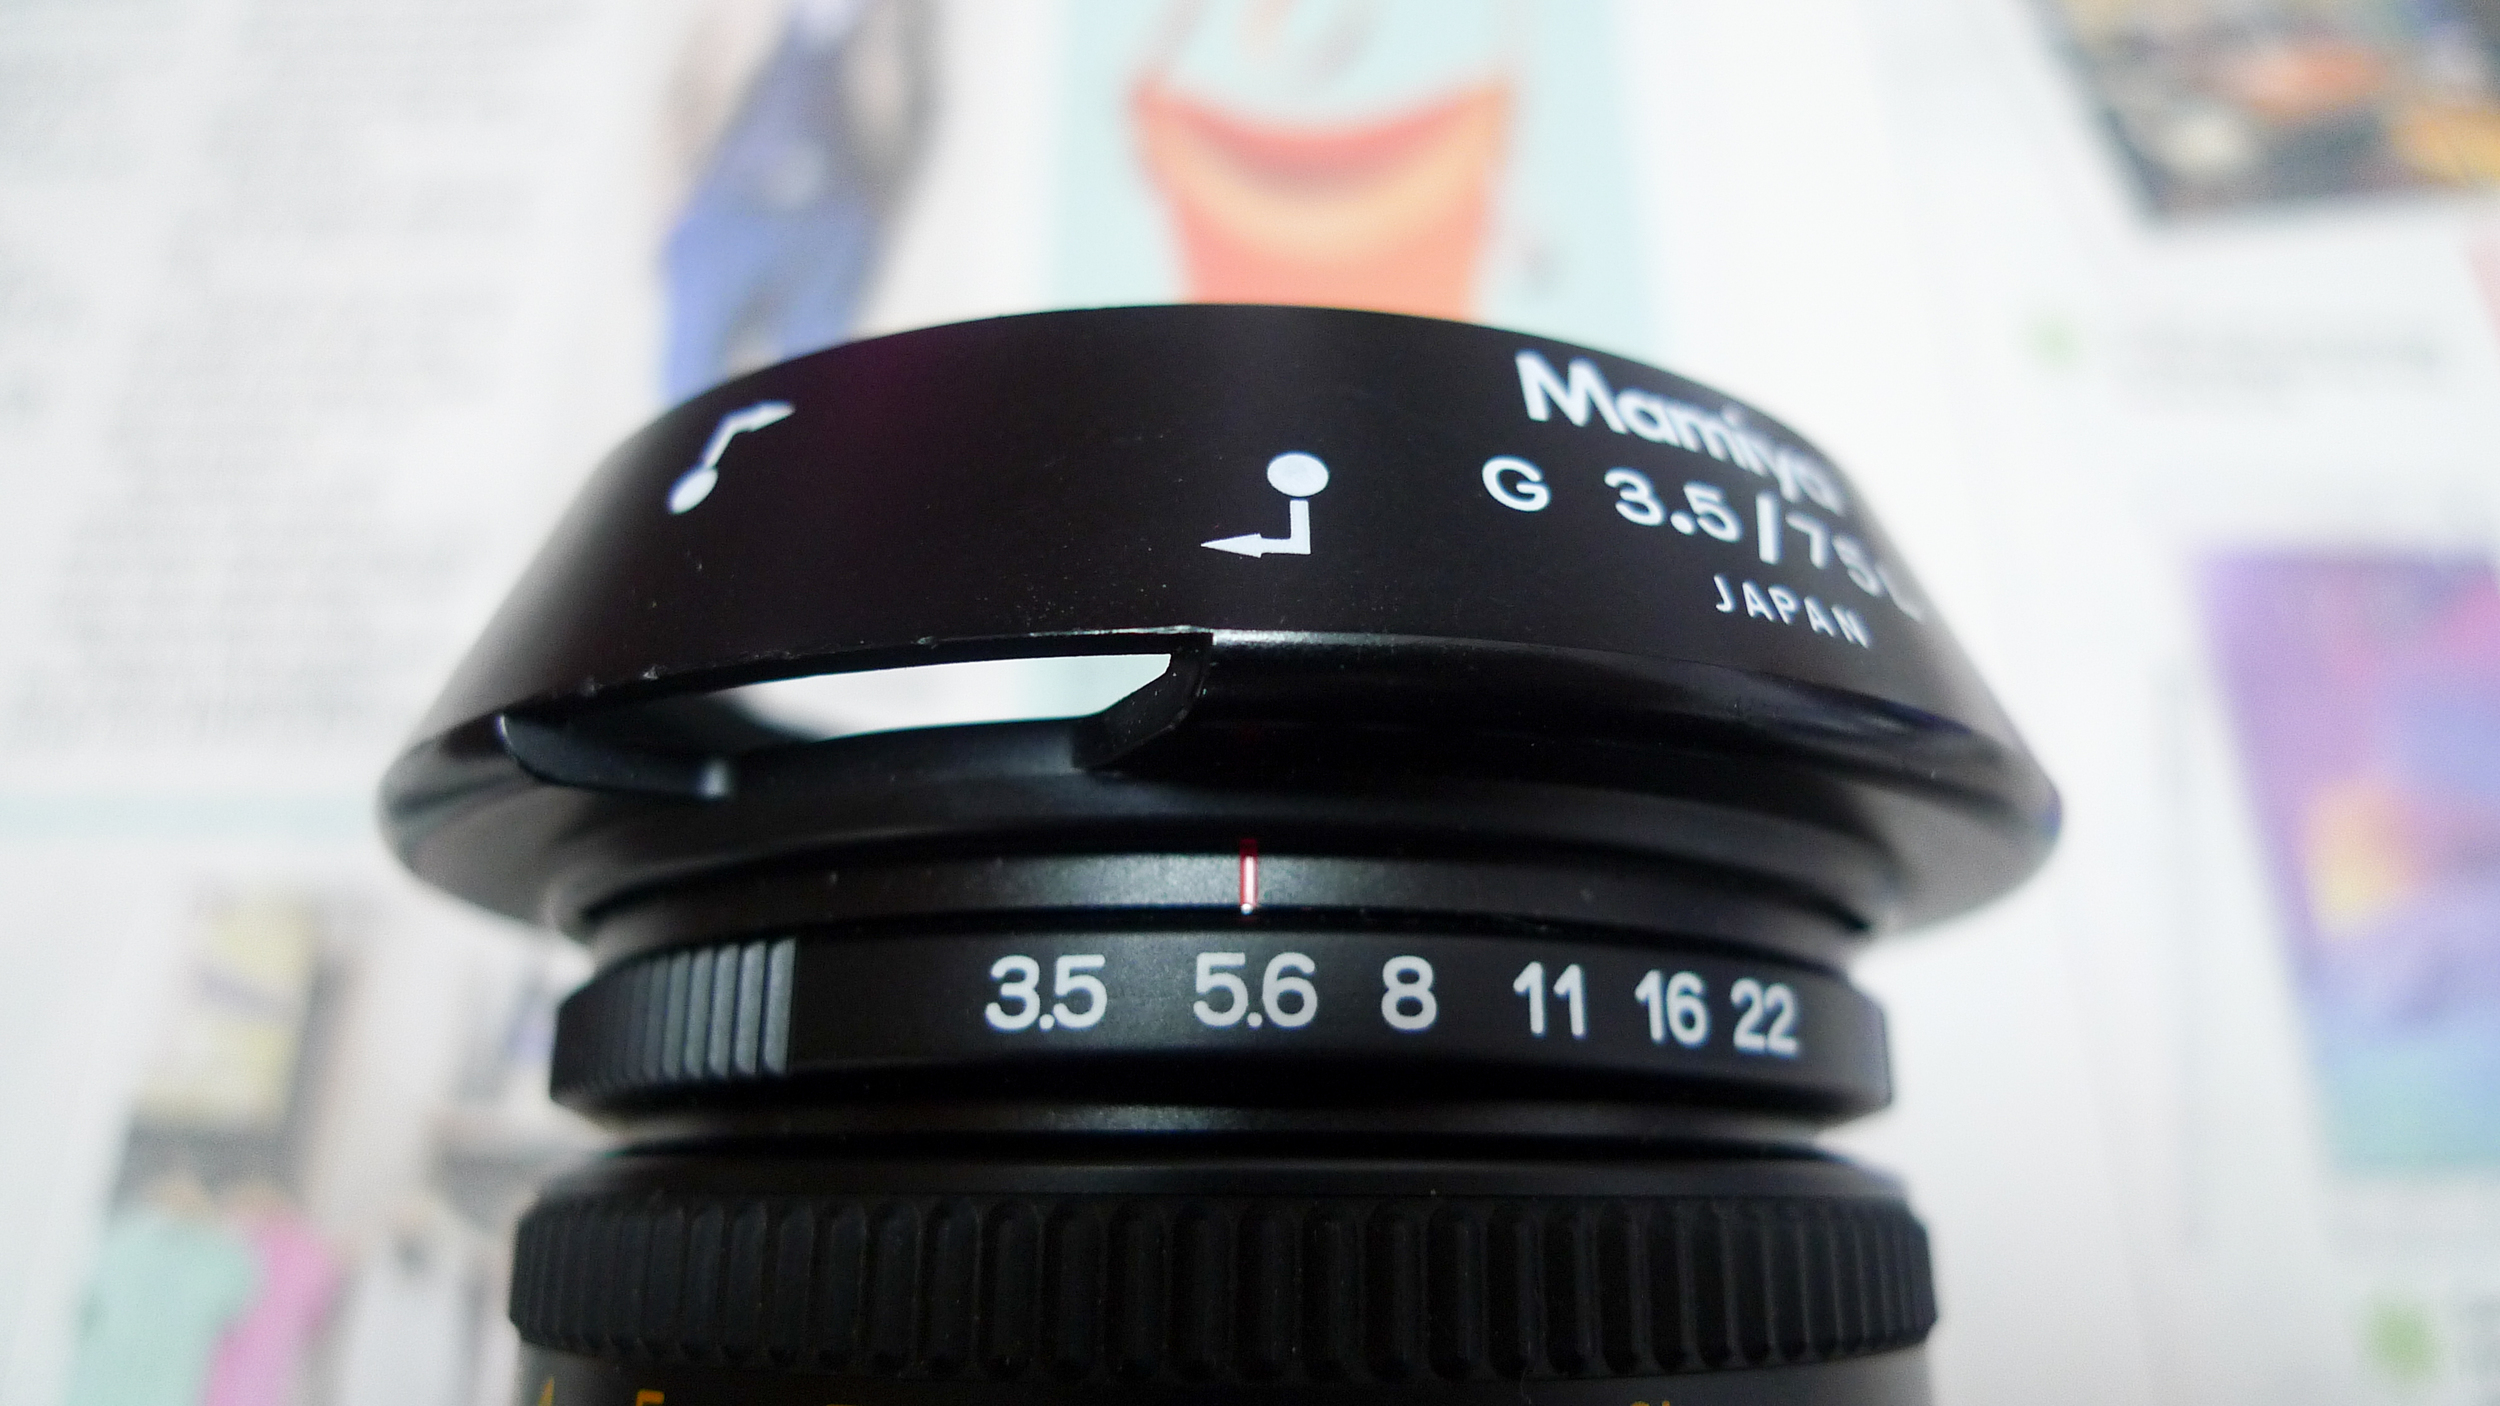 To use the lens hood, follow the labels to align with the red line on the lens